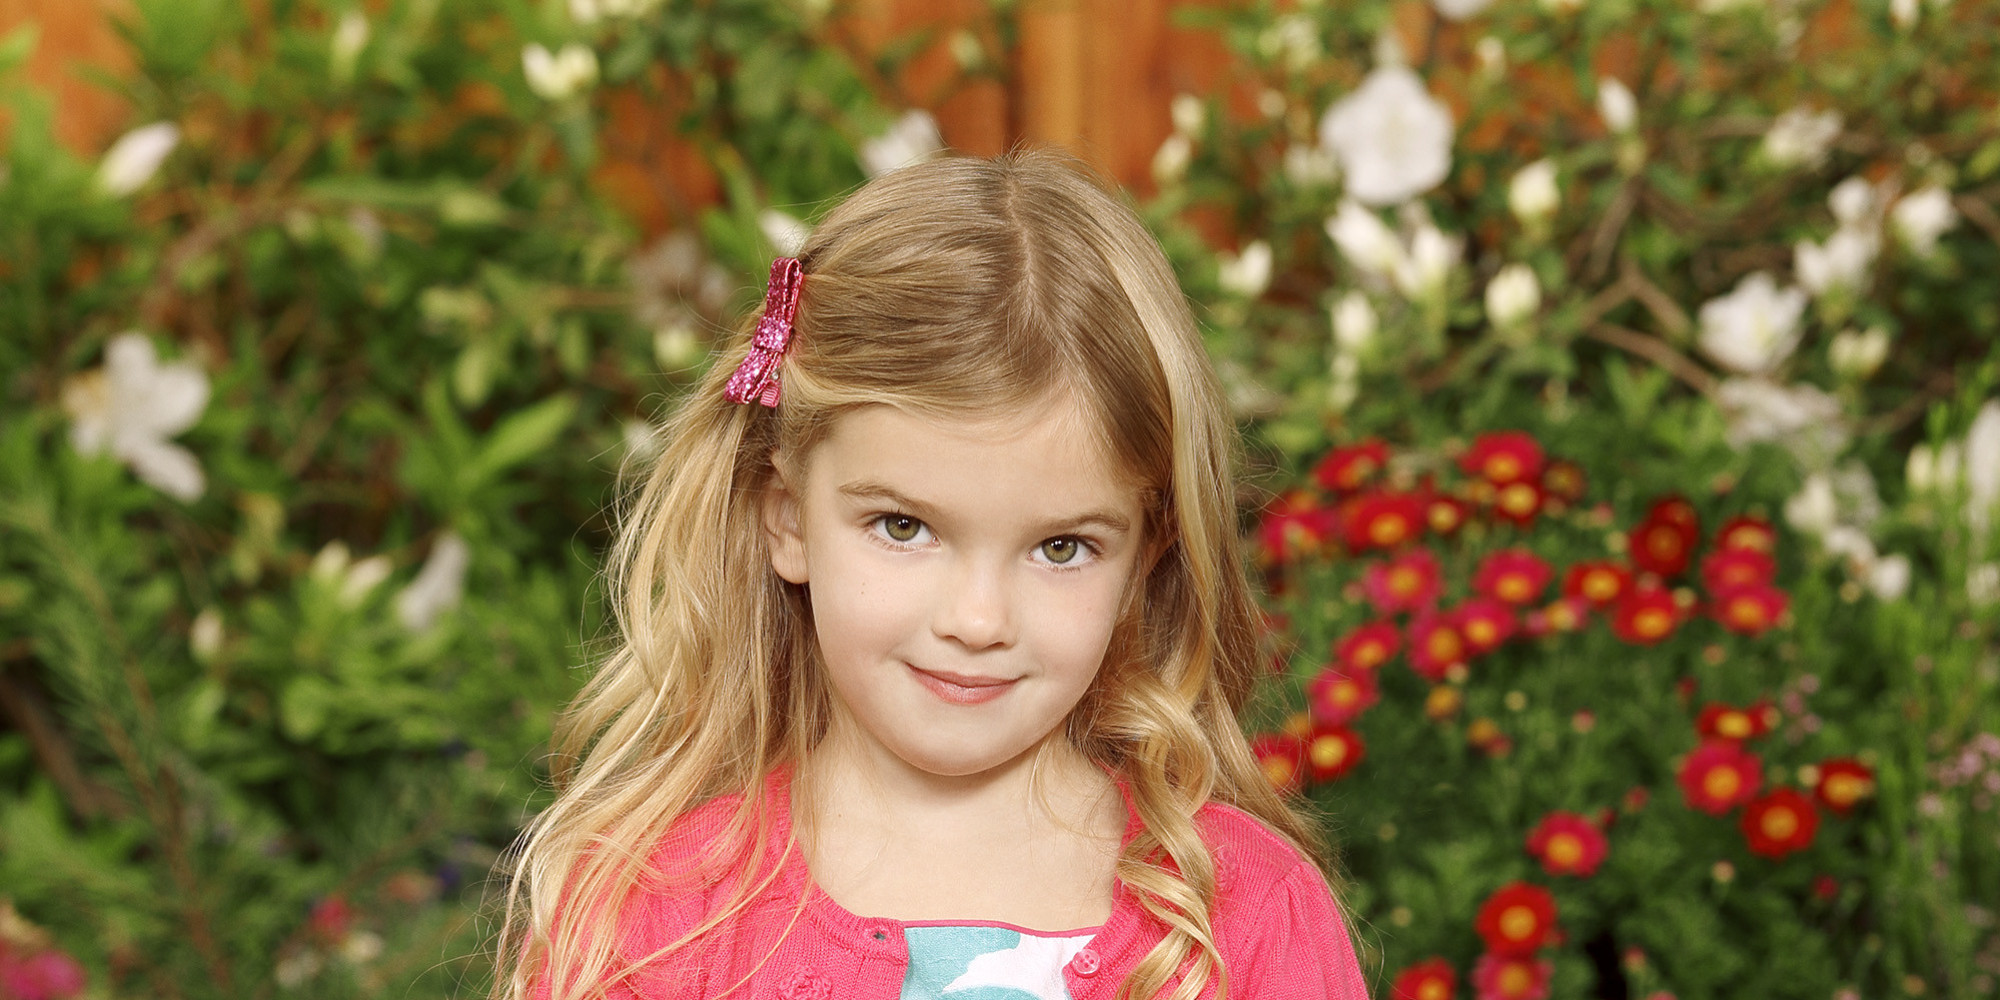 Mia talerico 5 year old good luck charlie actress receives death